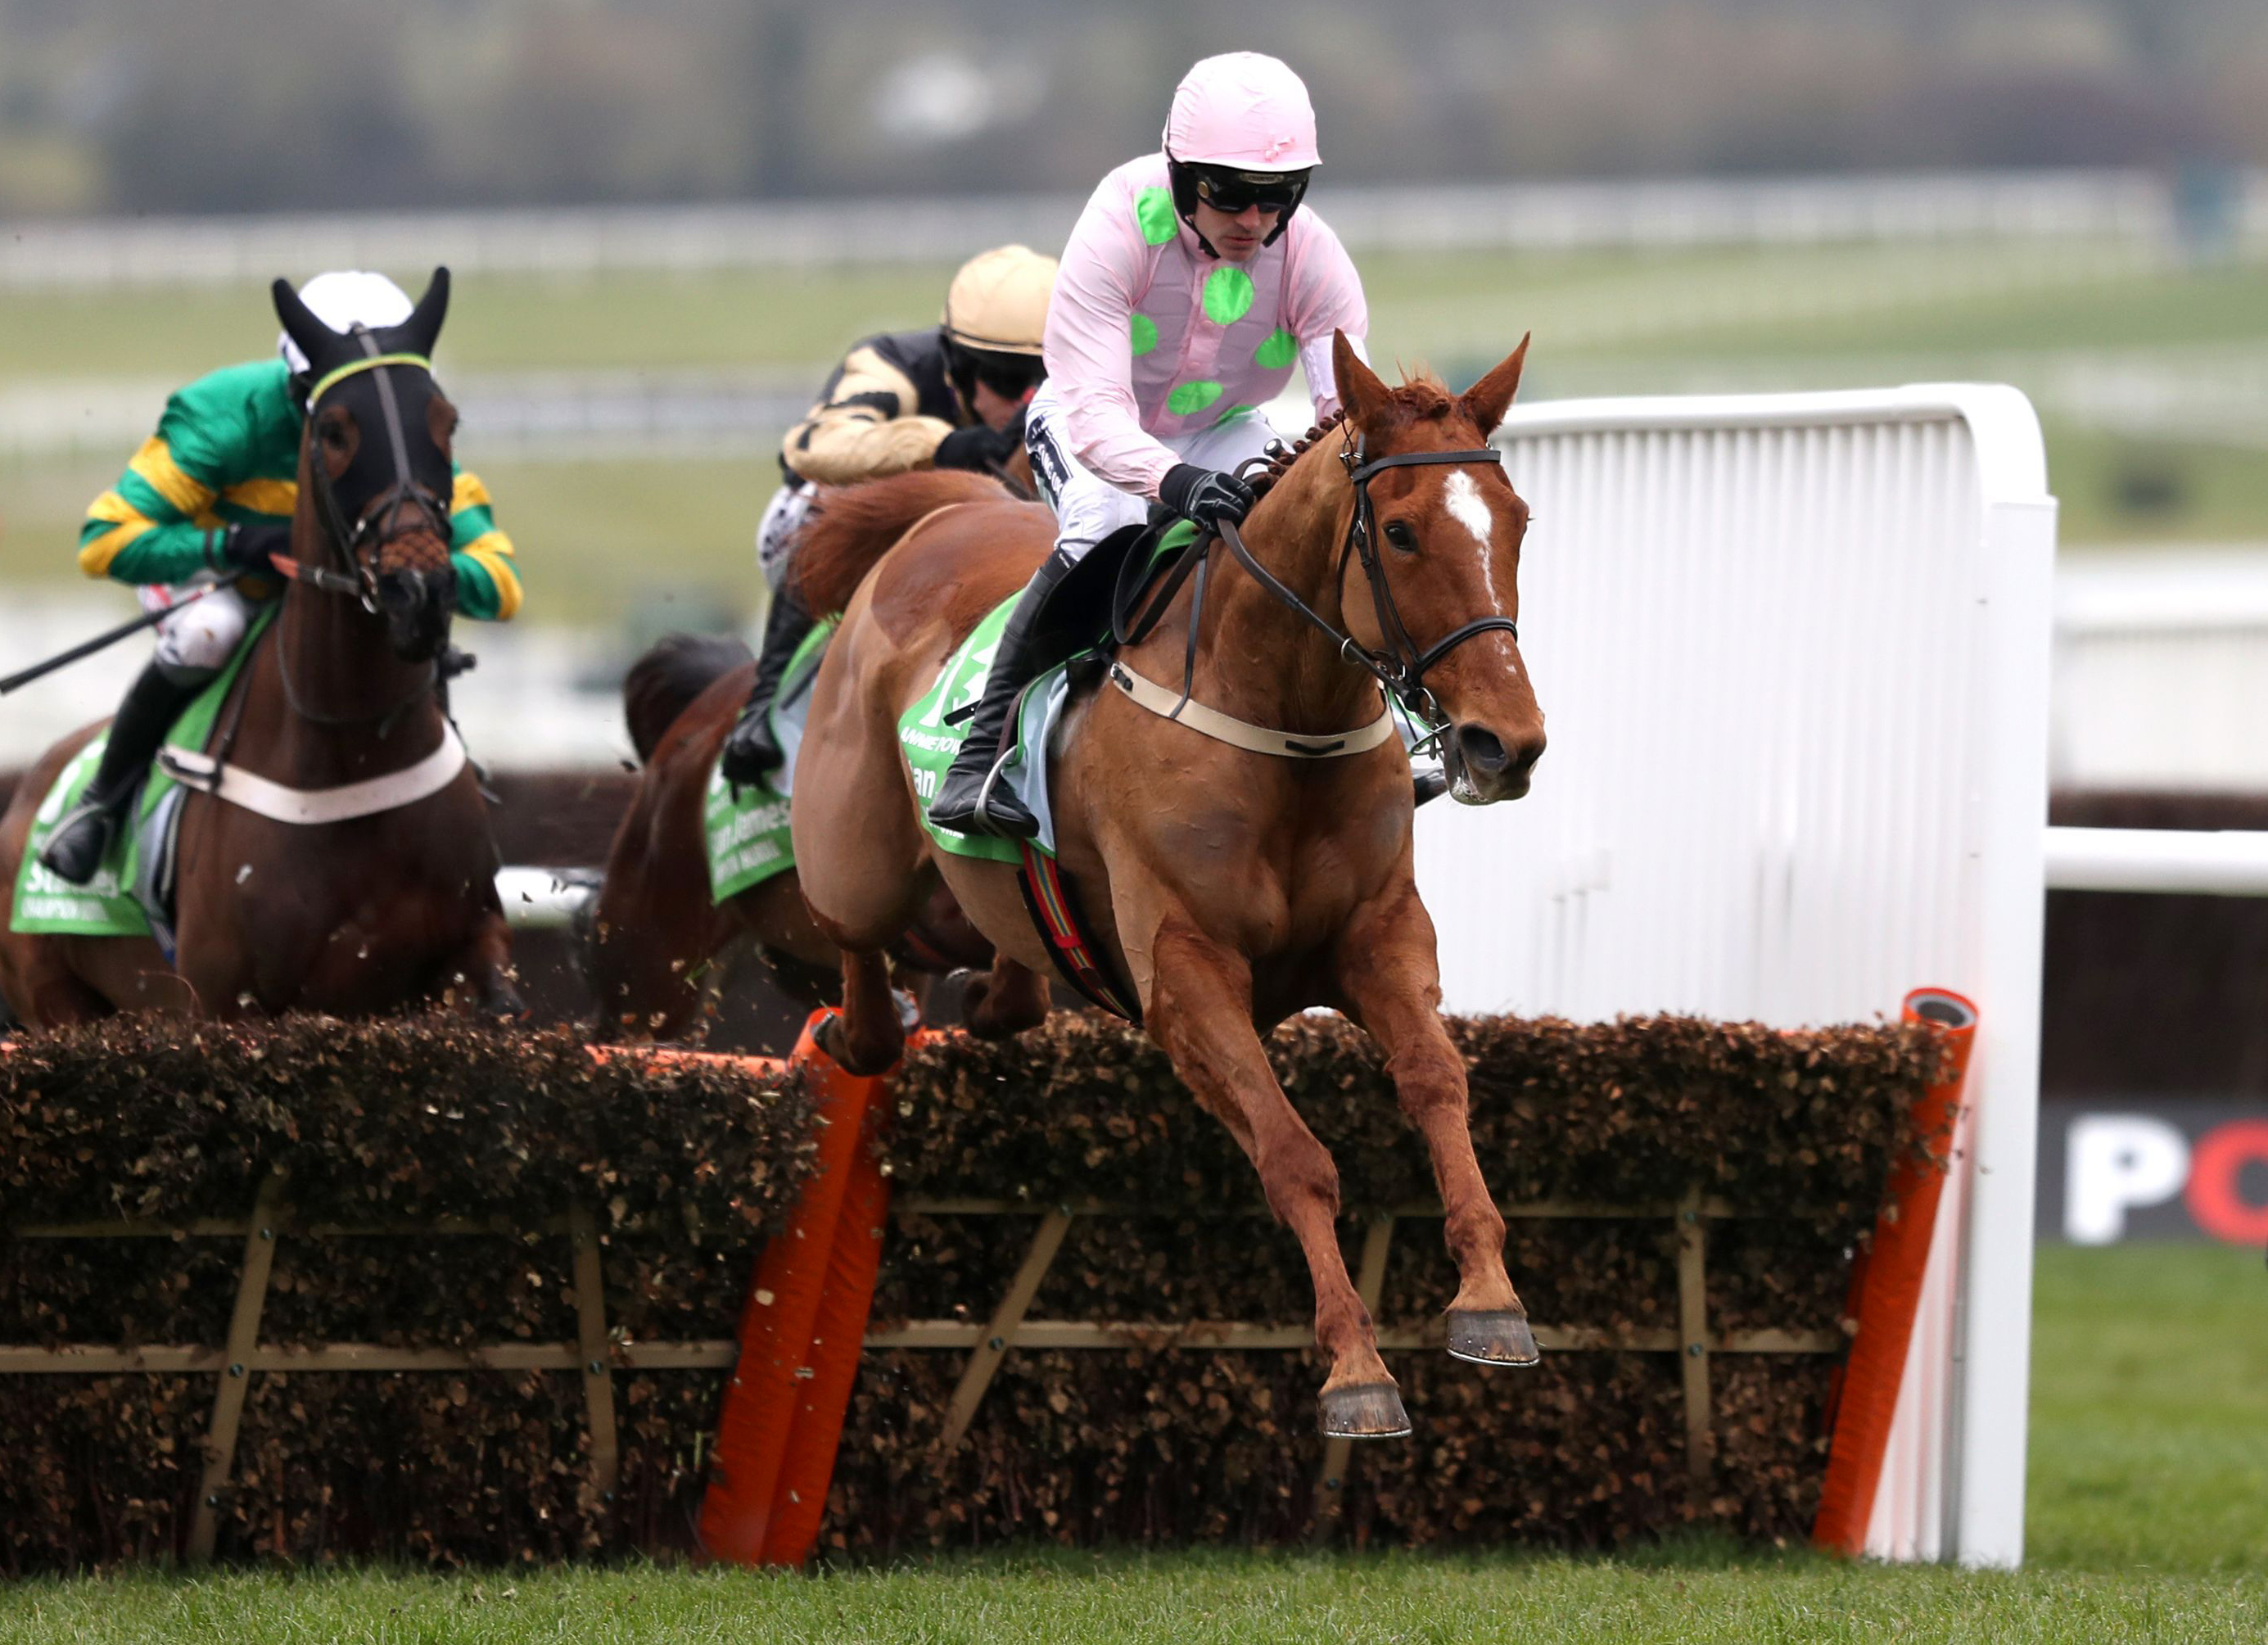 Annie Power ridden by Ruby Walsh clears the last hurdle to go onto win the  Champion Hurdle  during Champion Day of the 2016 Cheltenham Festival at Cheltenham Racecourse in Cheltenham England Tuesday March 15, 2016. (David Davies/PA via AP)  UNITED KINGDO